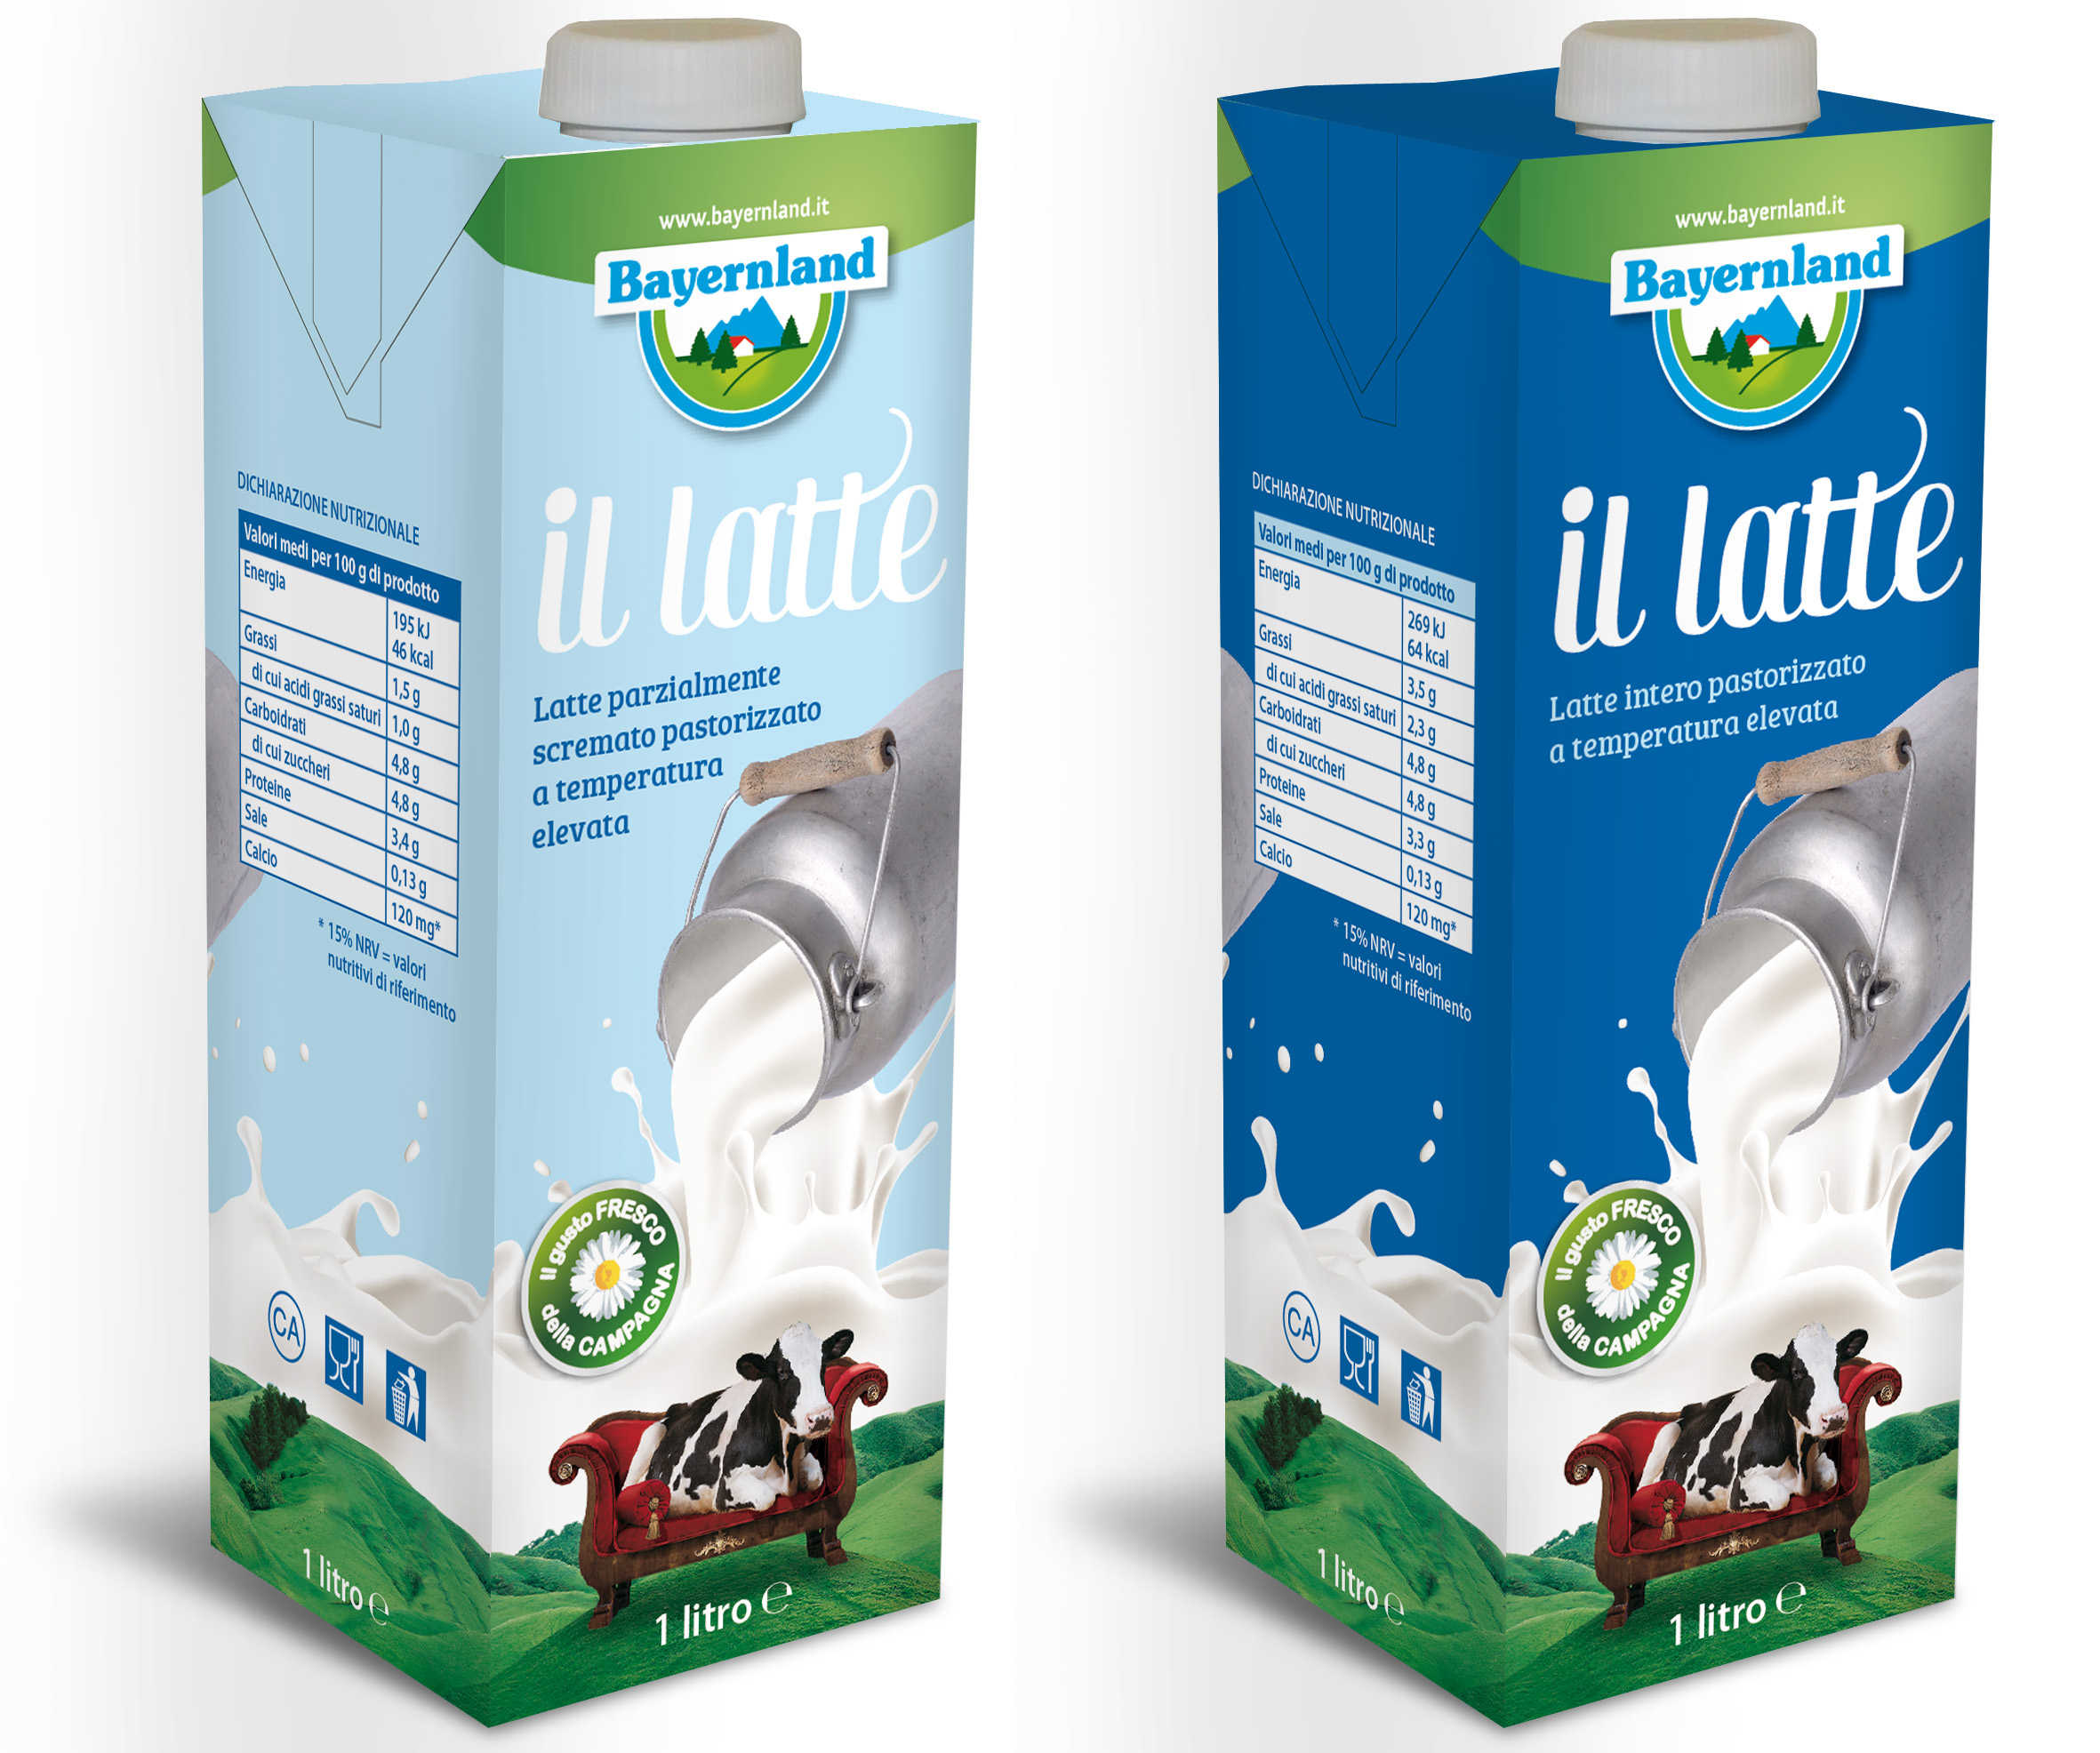 Latte-Bayernland-ESL-1l-Nuovo-Packaging